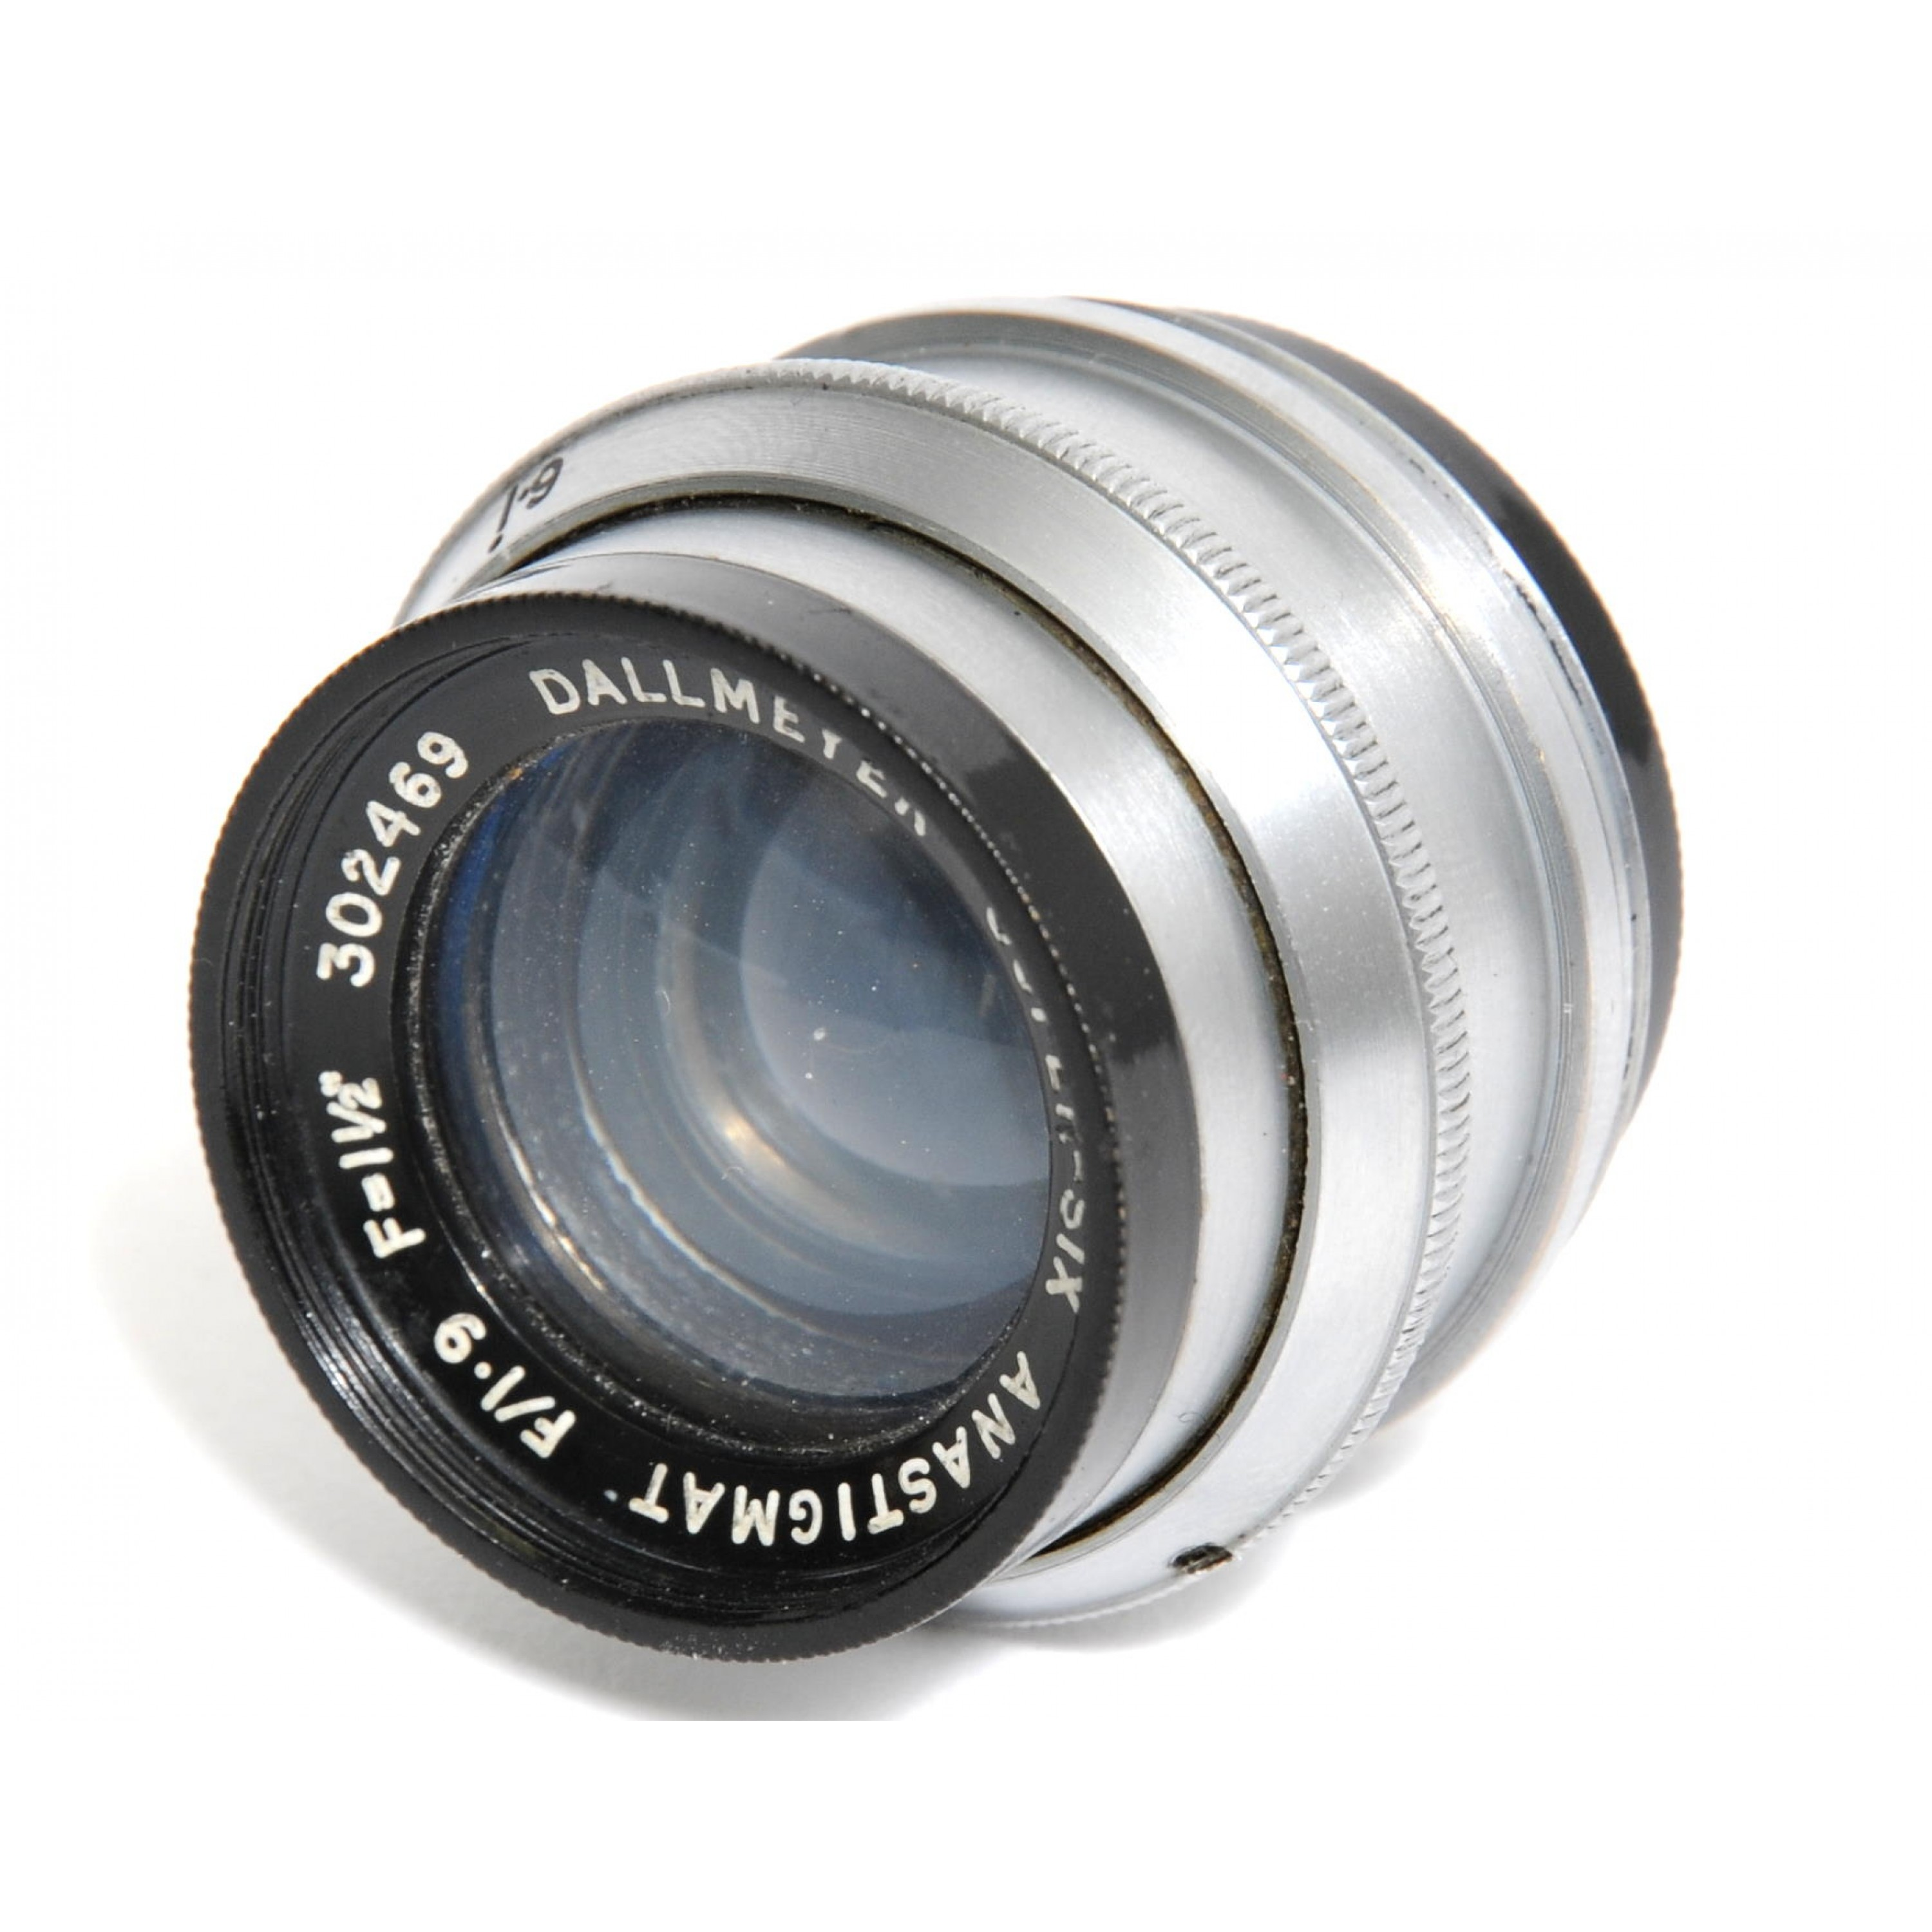 Dallmeyer Super-Six Anastigmat F/1.9/38mm  F=1 1/2 inch  C Mount